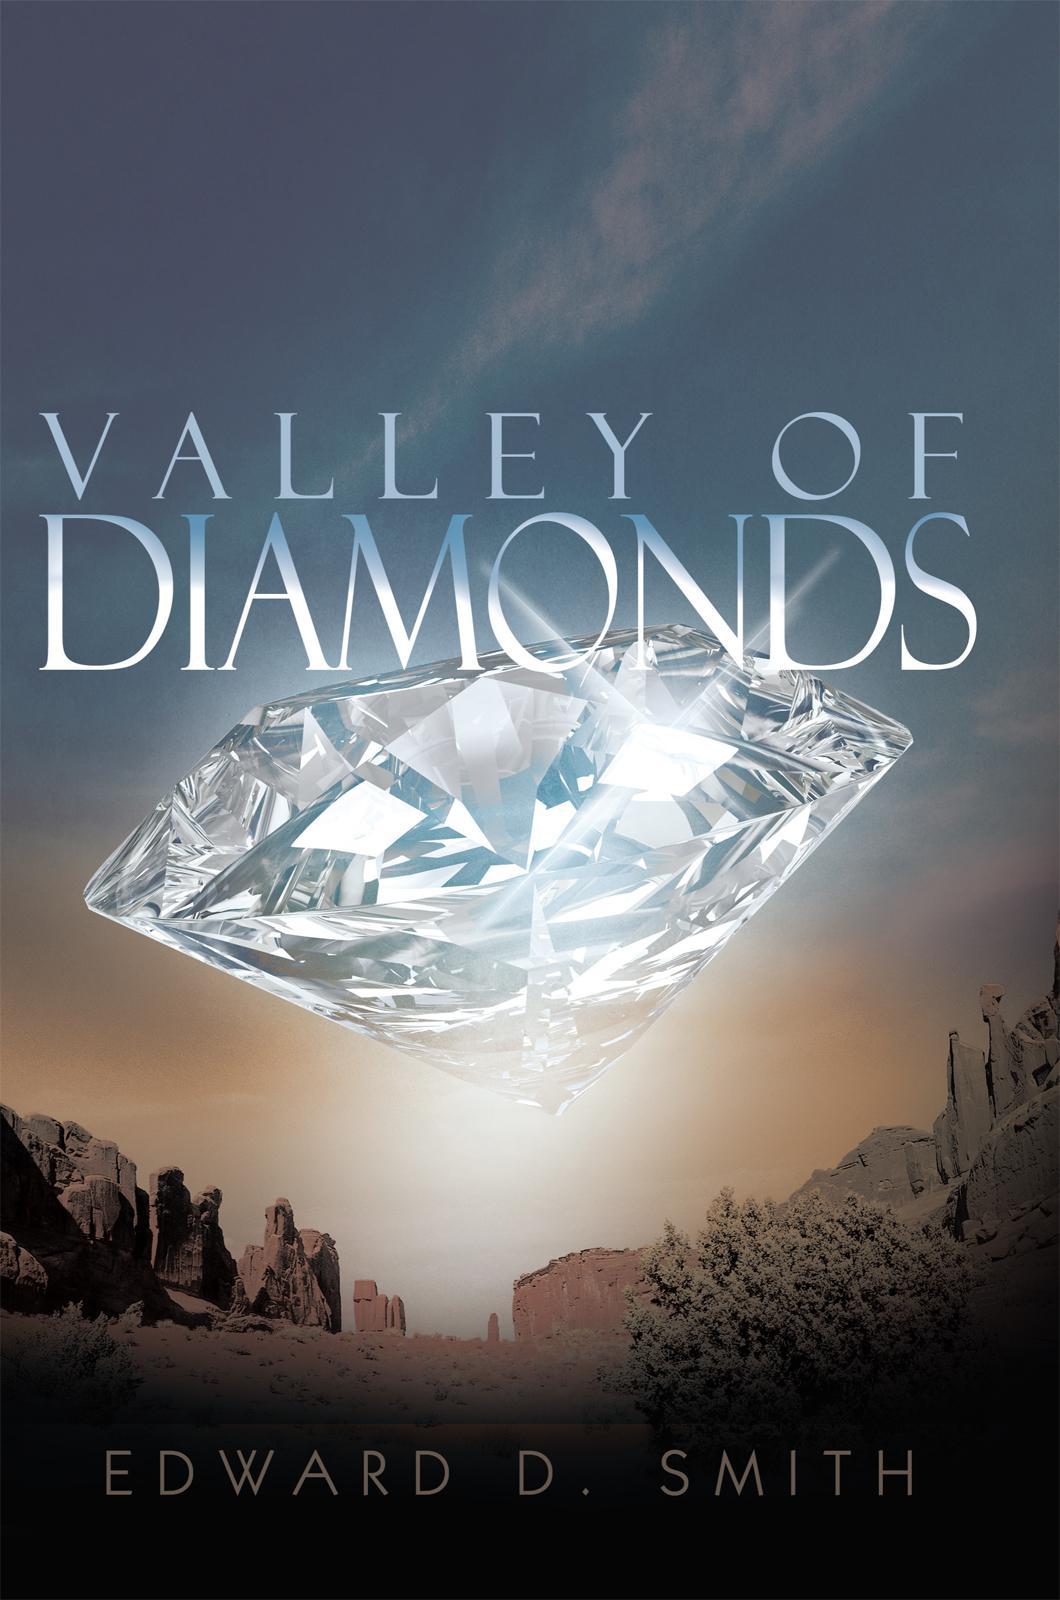 VALLEY OF DIAMONDS